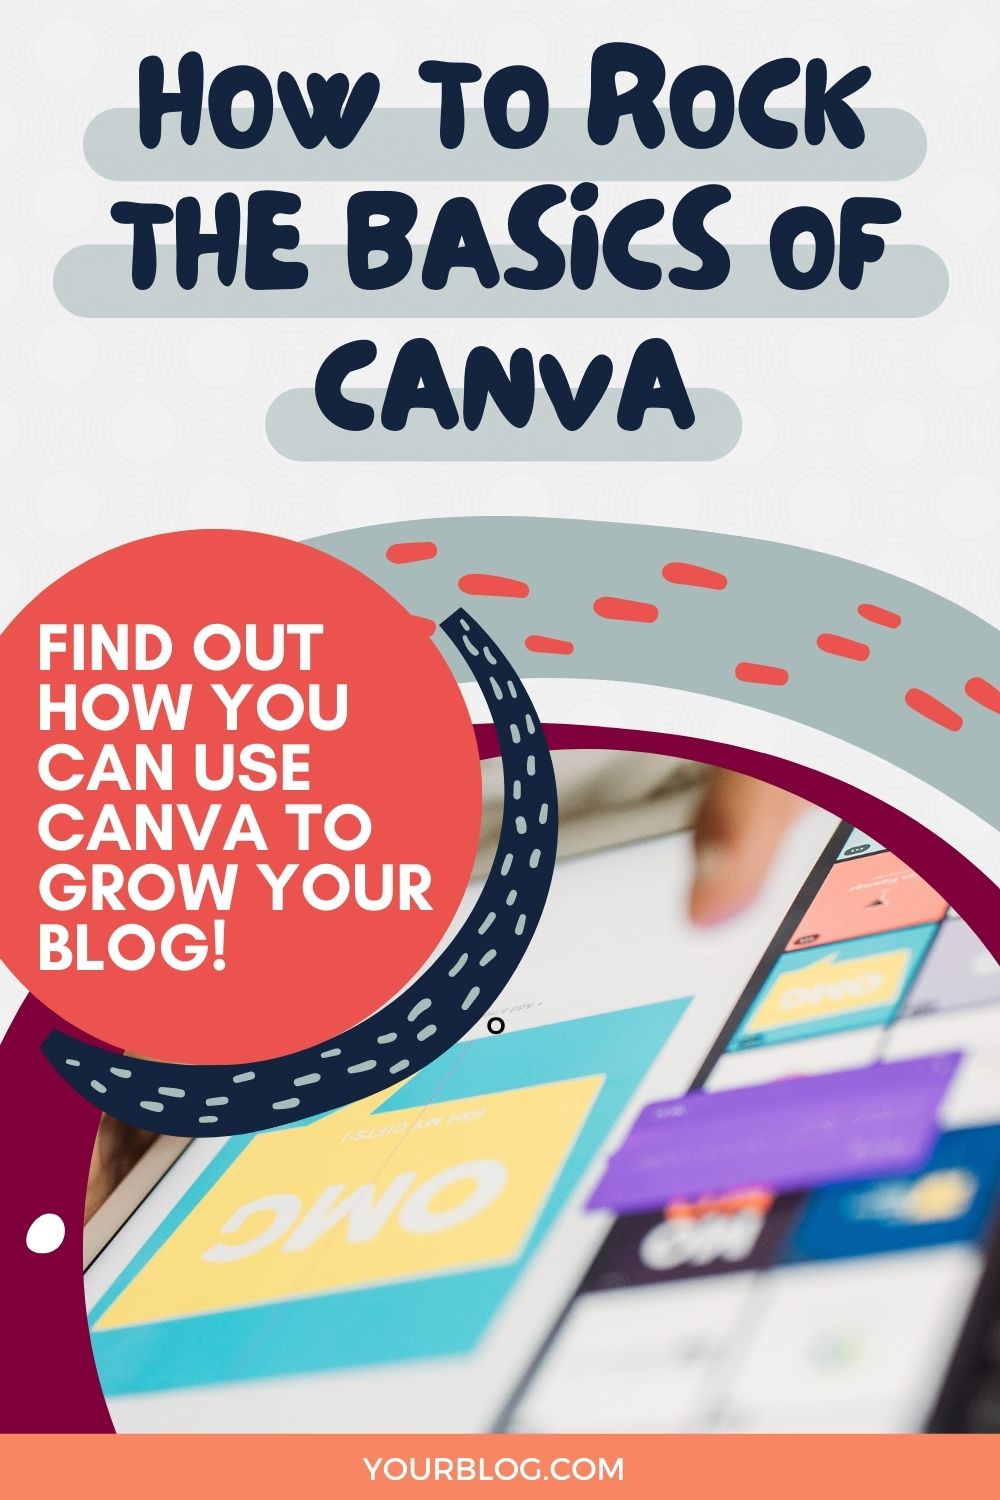 If you're looking for a simple graphic design tool to use for your blog or content creation, then you need to read this! Canva is the BEST tool and this article helps you understand why it's so helpful and how you can use it to grow your blog!